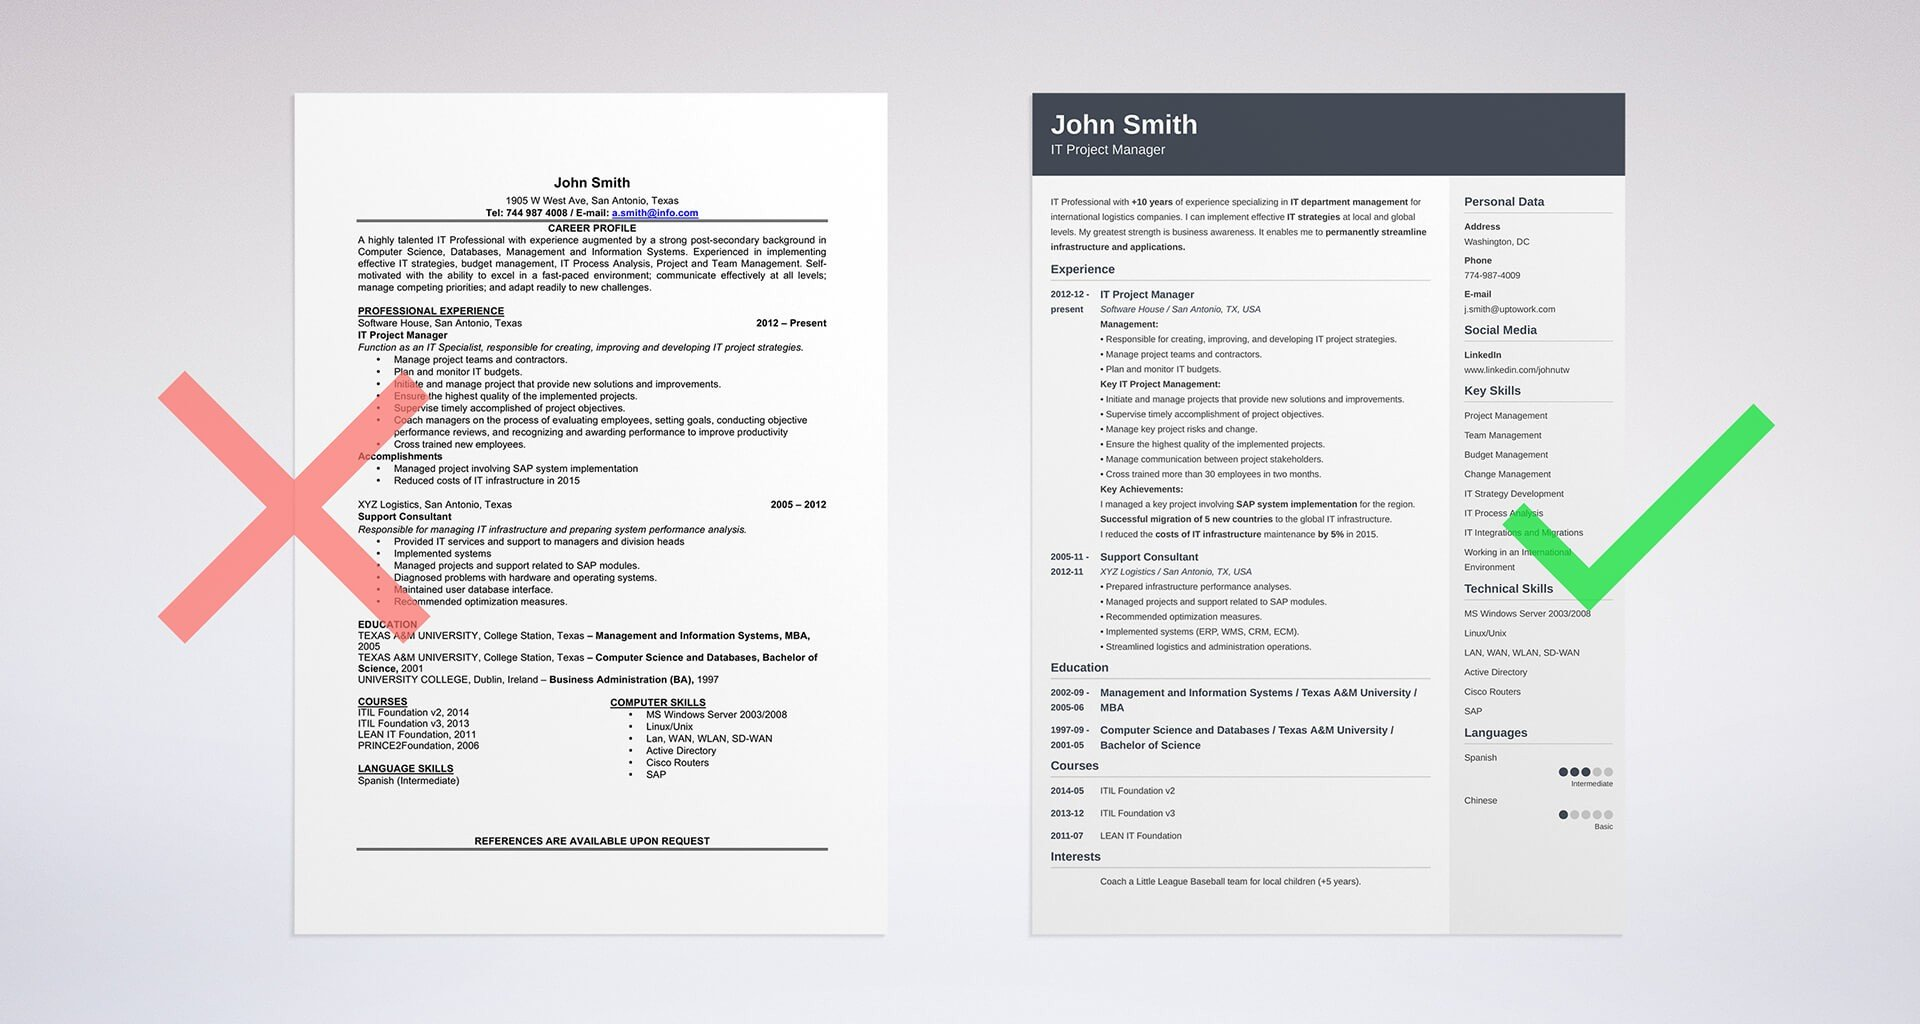 best resume builder online. Resume Example. Resume CV Cover Letter